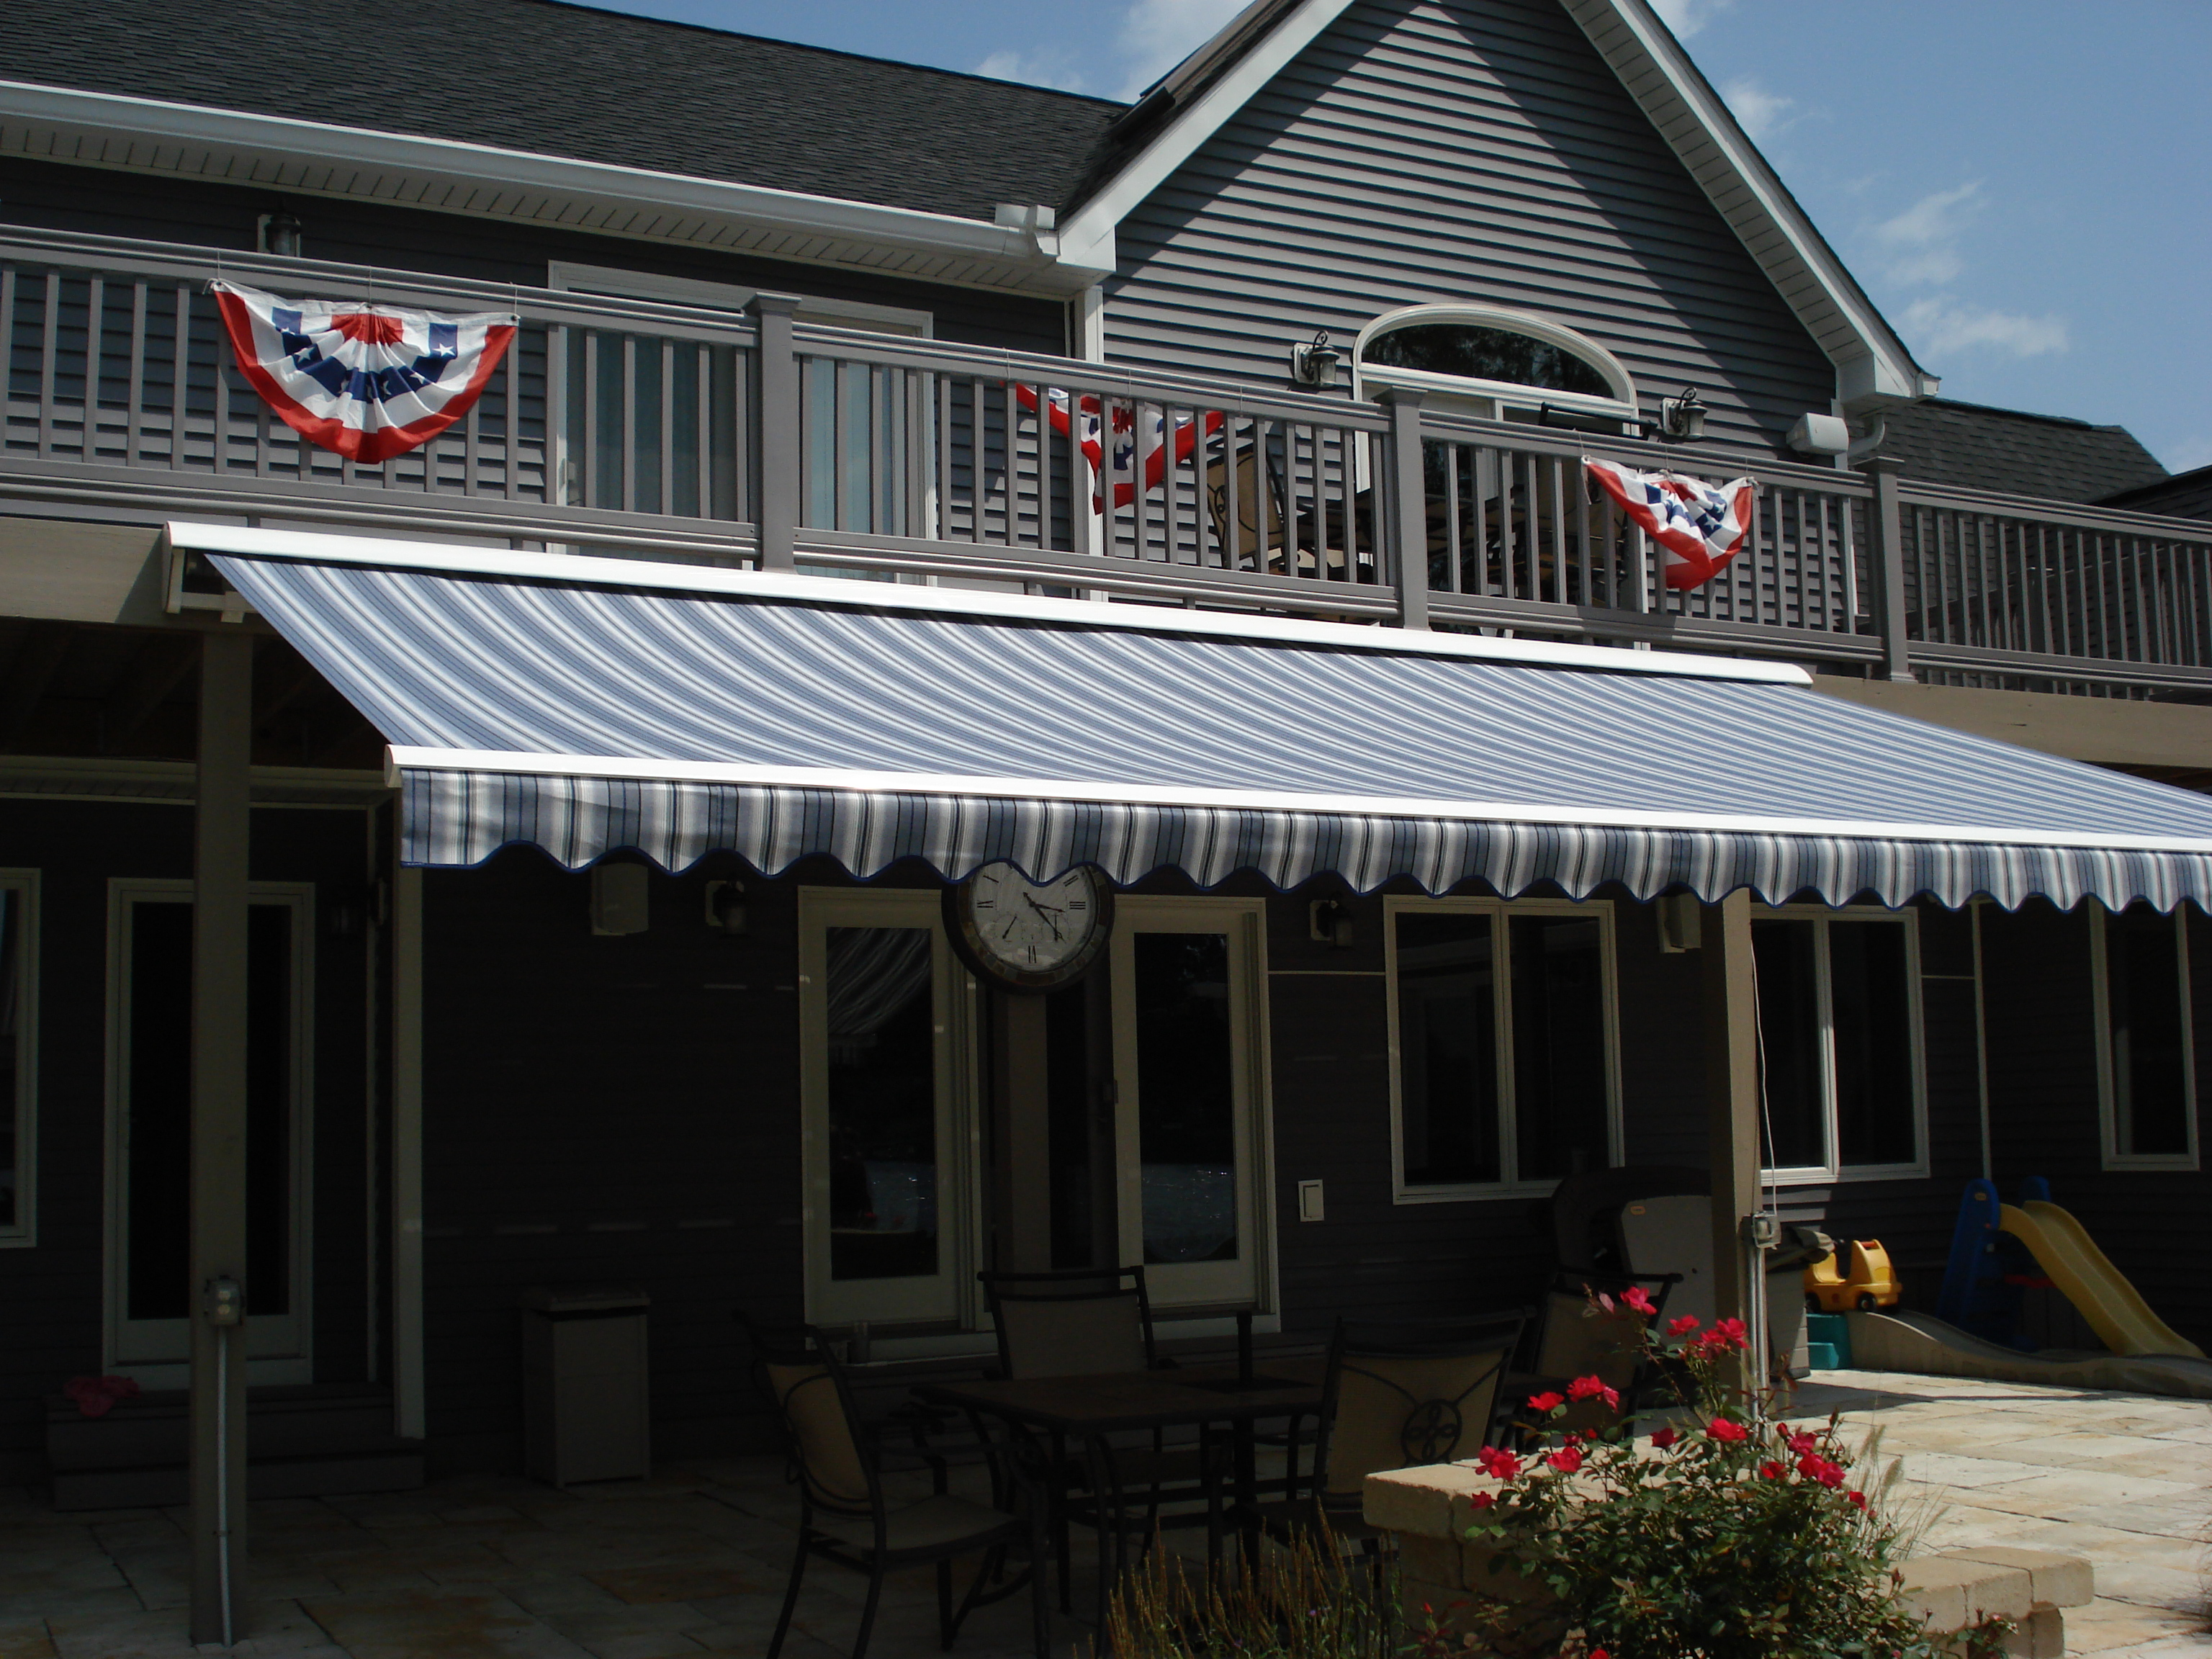 or btw ideas amazing uncovered awning i out that pin over deck a covered cheap not area metal it both the check and one think retractable building is perfect you to inspire has